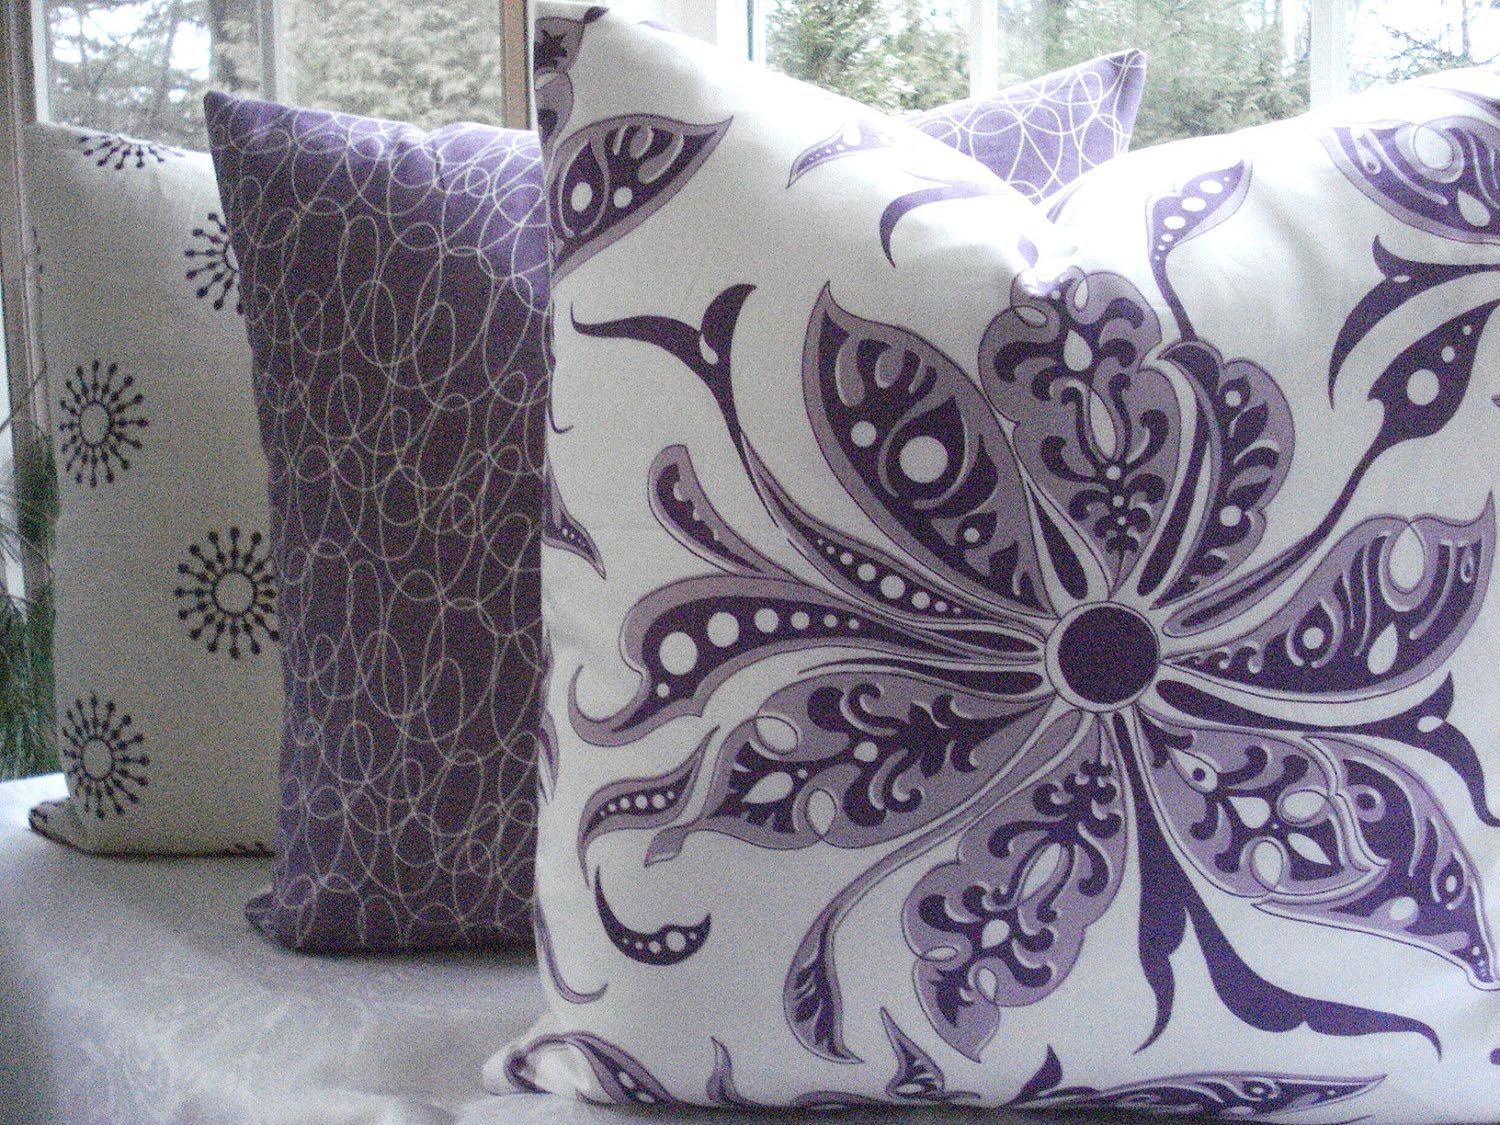 Purple Throw Pillows For Couch Purple Throw Pillows Purple Couch Pillows Decorative Pillows